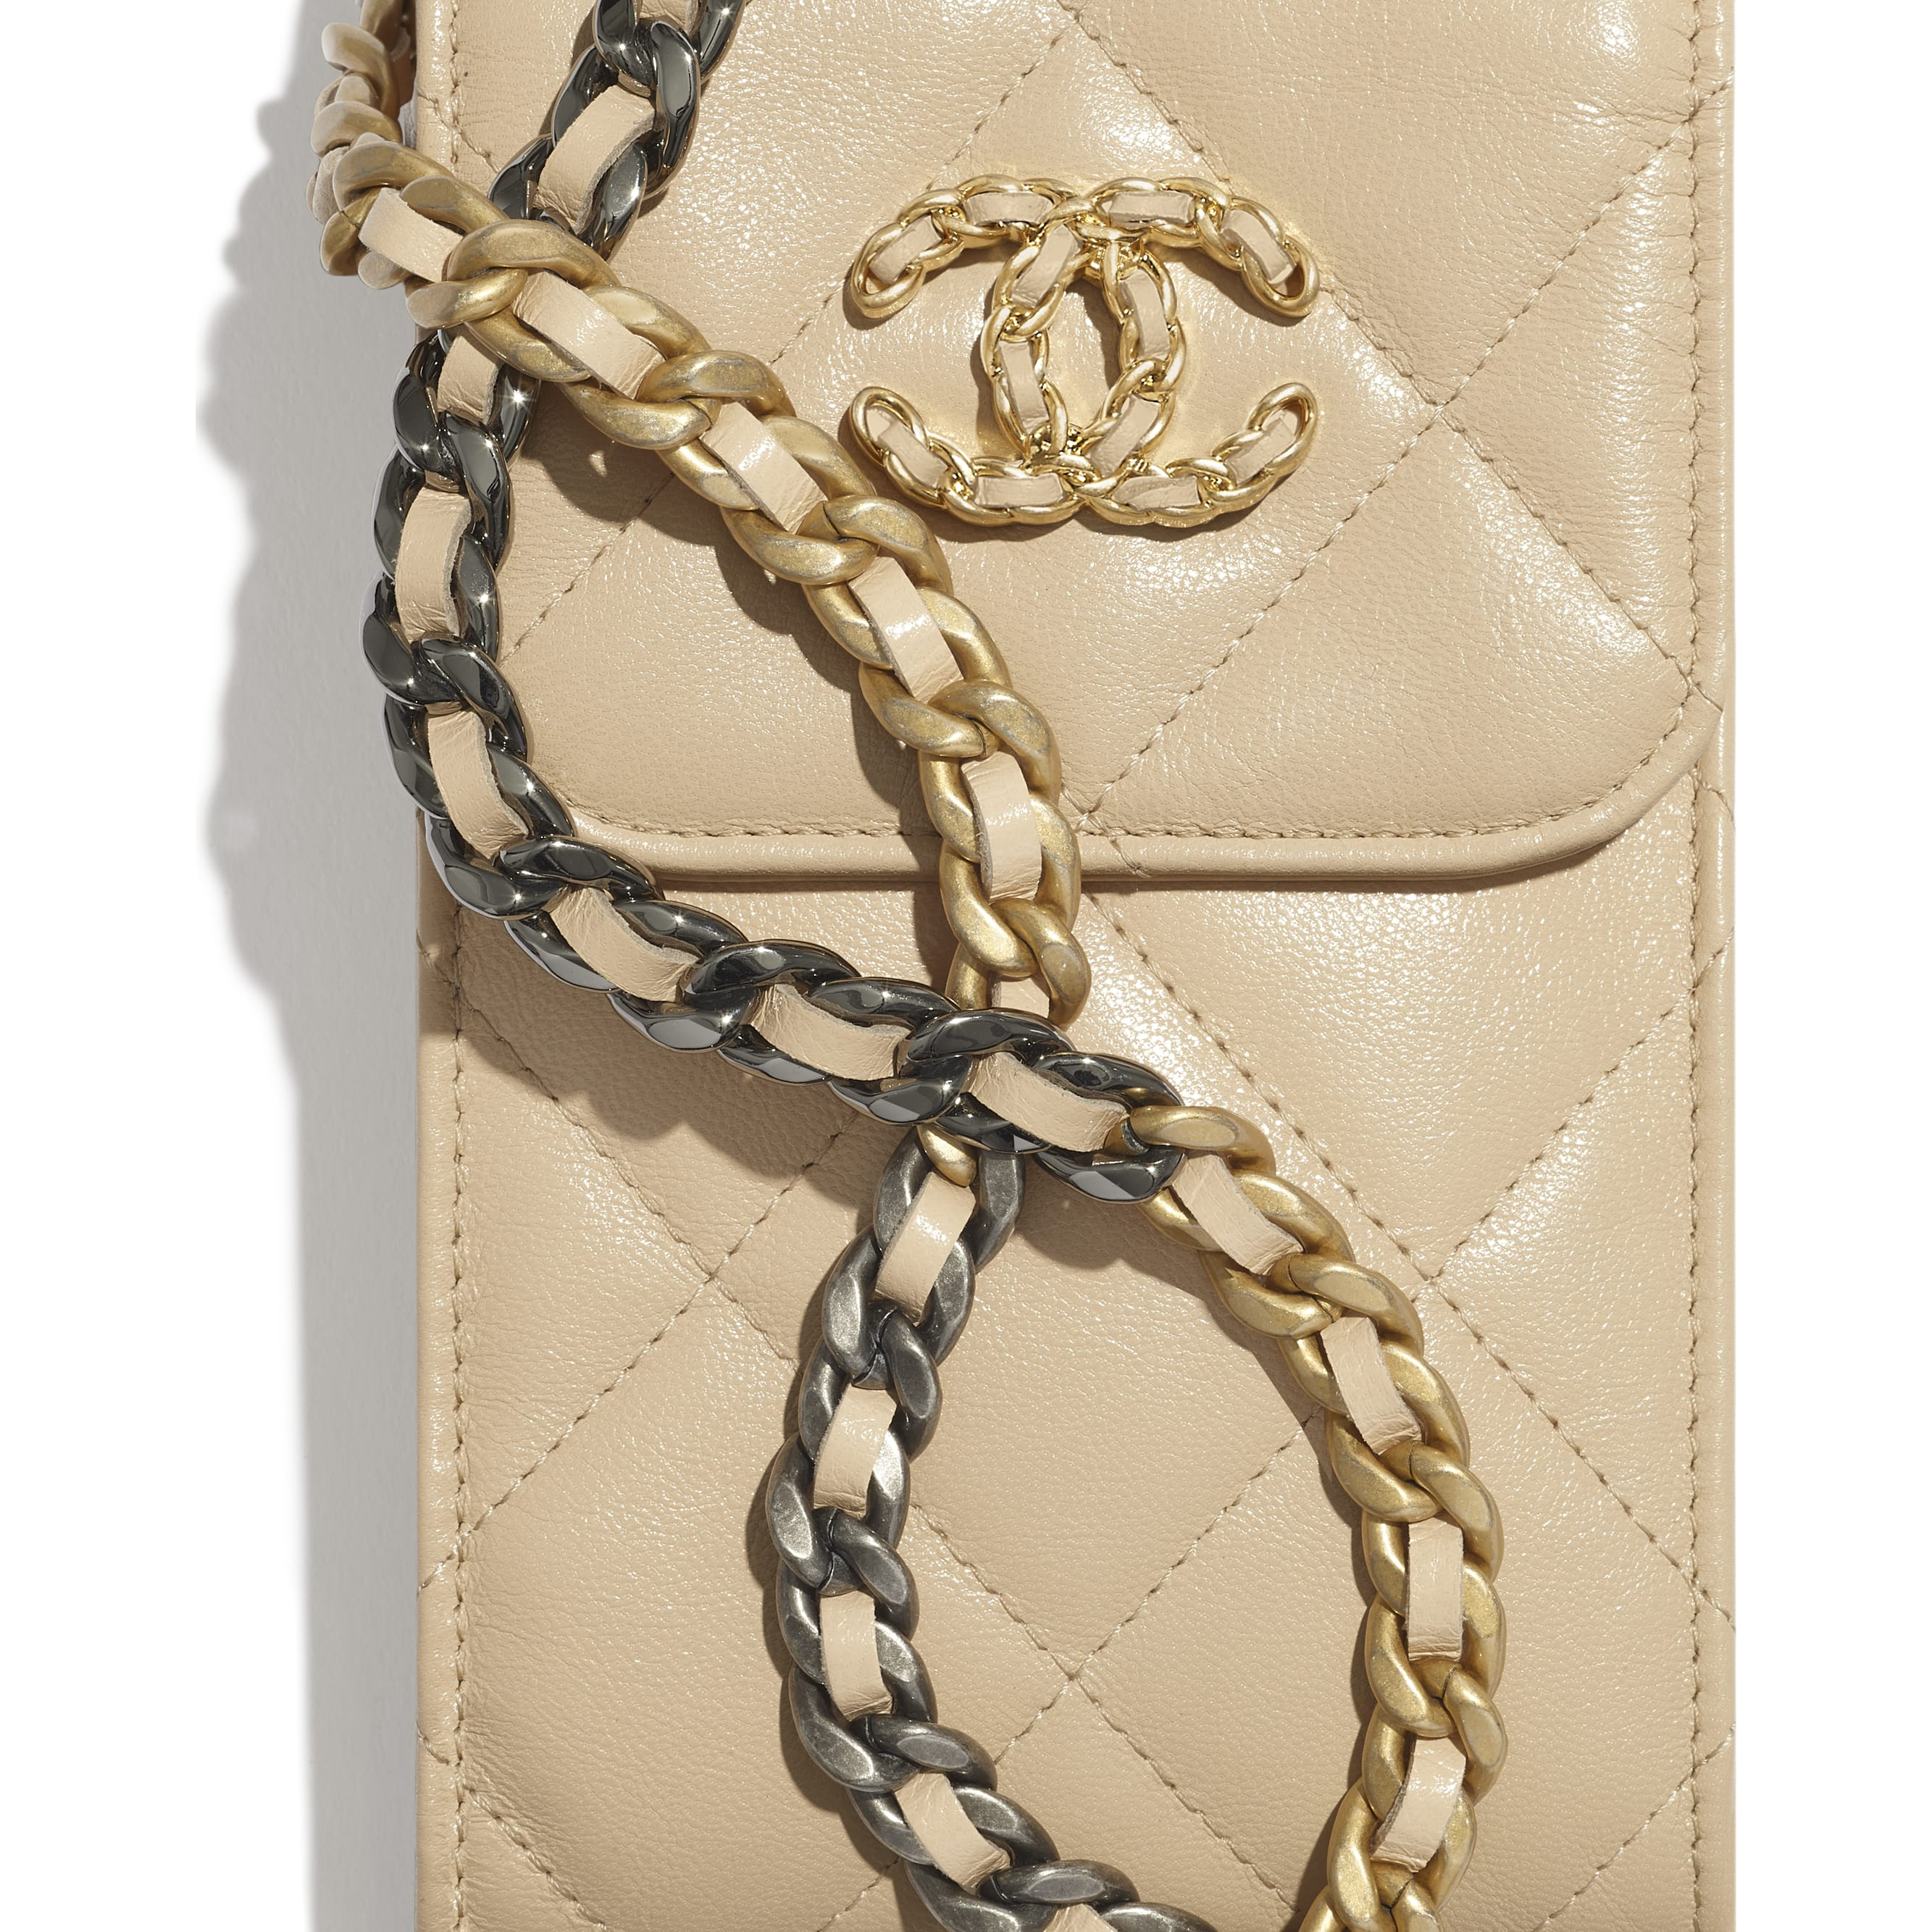 CHANEL 19 Phone Holder with Chain - Beige - Shiny Goatskin, Gold-Tone, Silver-Tone & Ruthenium-Finish Metal - CHANEL - Extra view - see standard sized version